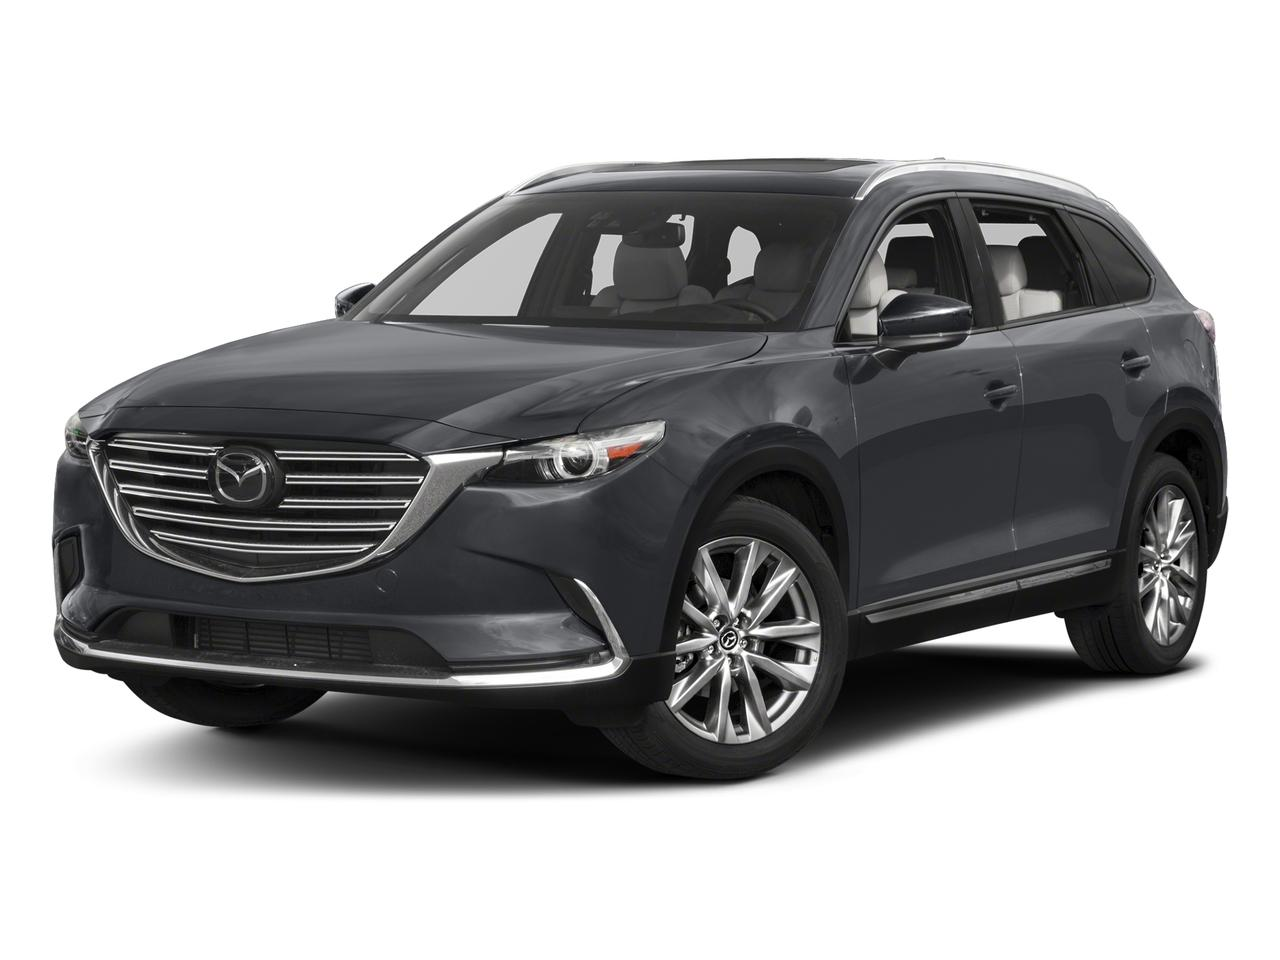 2017 Mazda CX-9 Vehicle Photo in Bowie, MD 20716